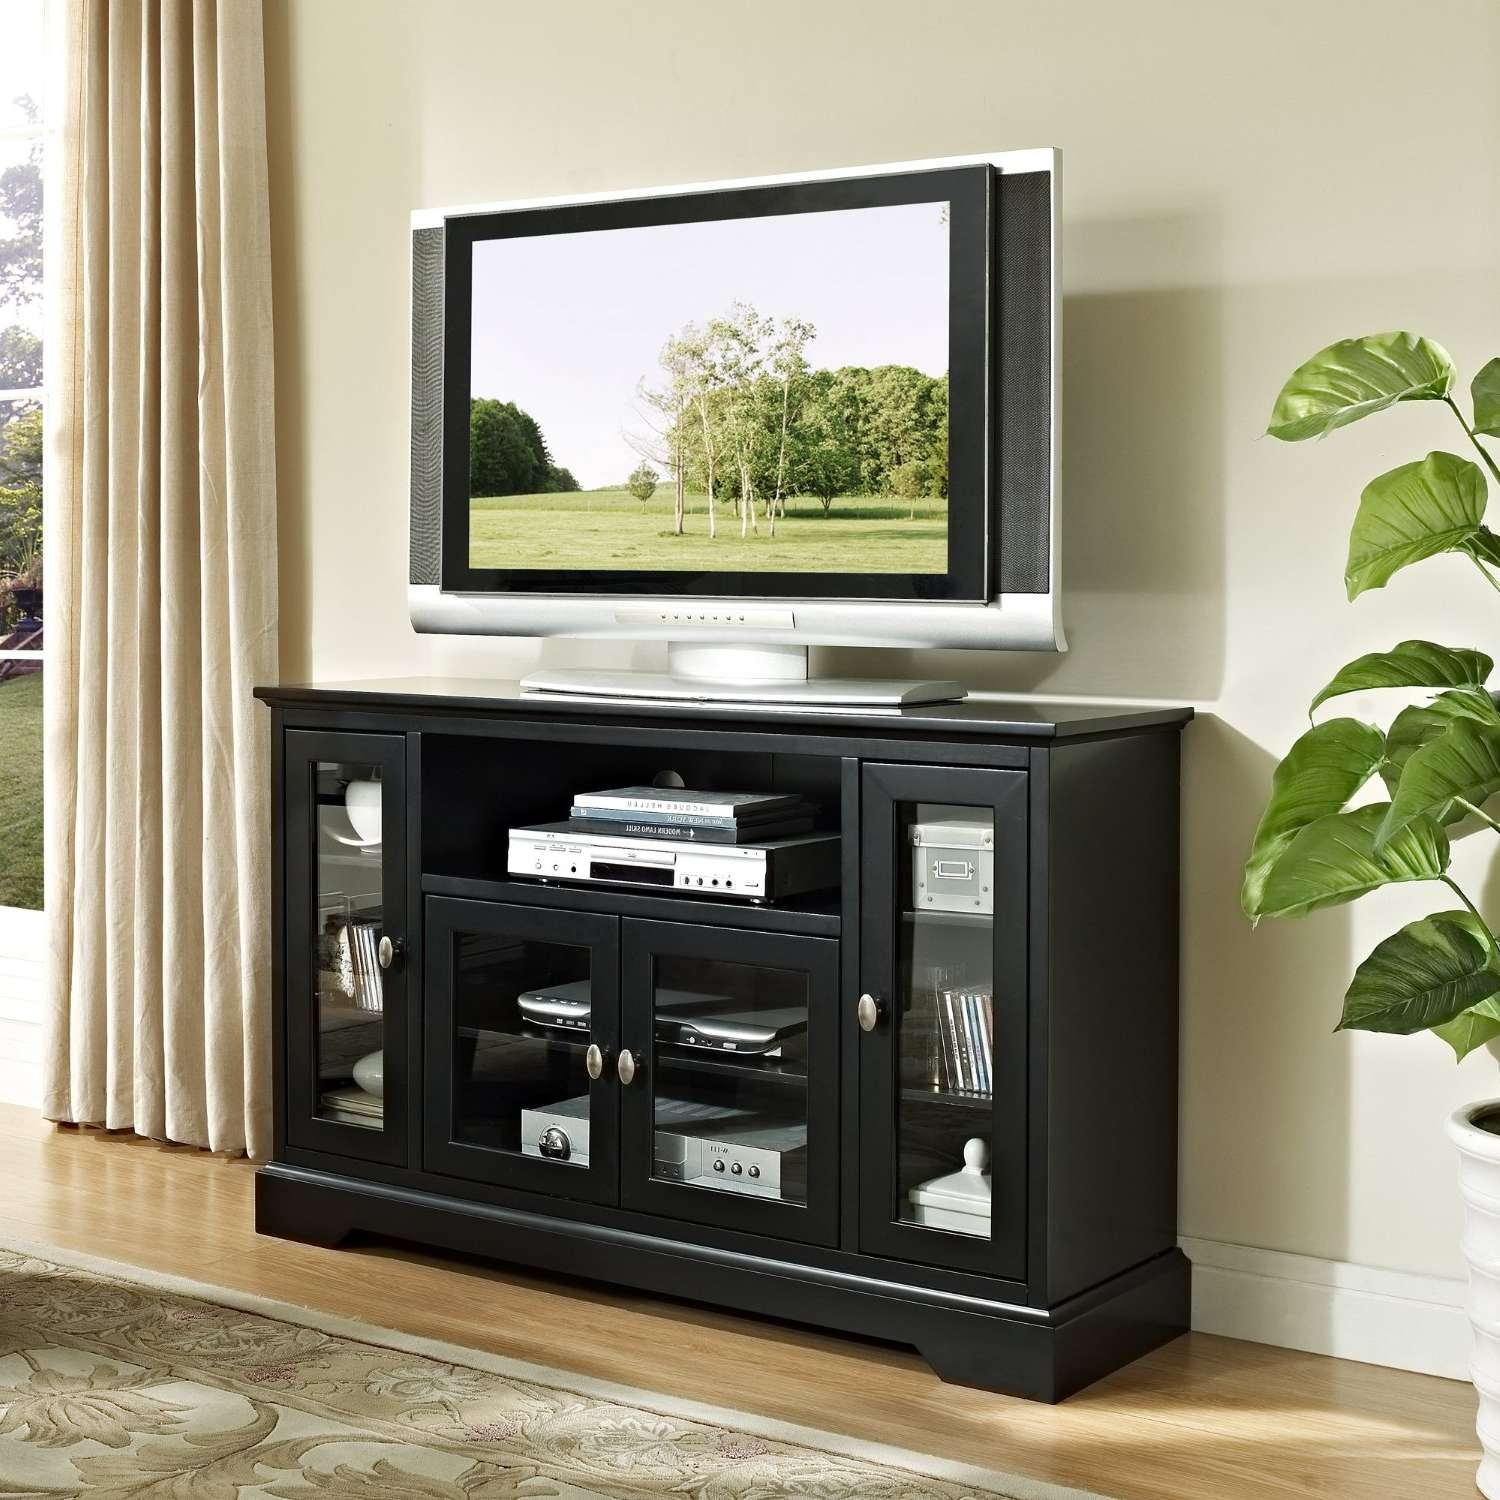 Light Wood Tv Stand Simple Room With Ikea Besta Media Cabinet Of Regarding Wood Tv Stands With Glass (View 12 of 15)